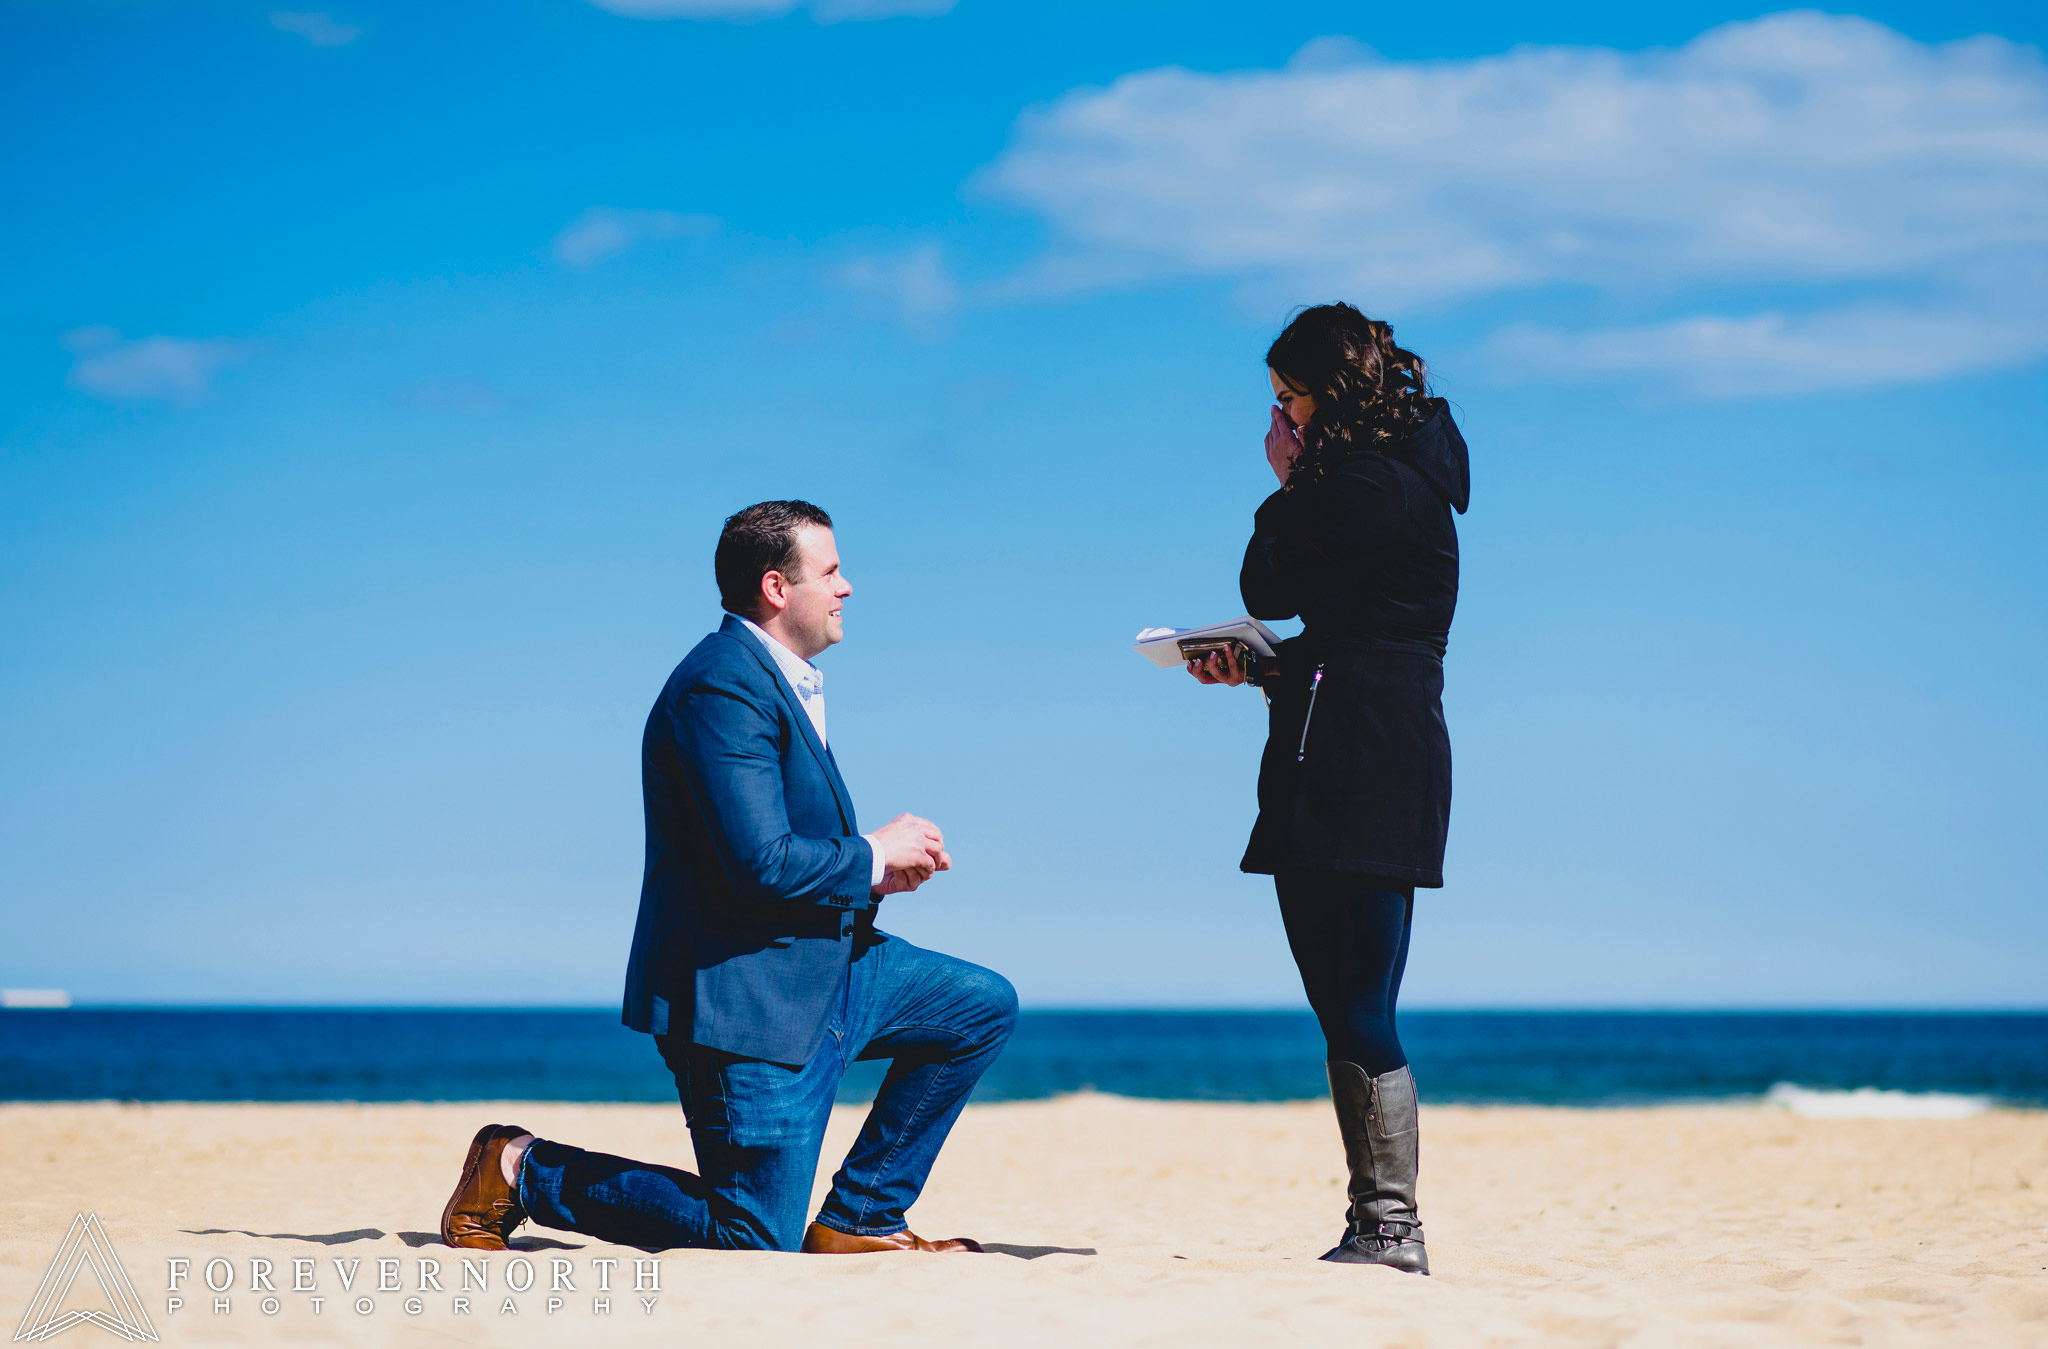 Schall-Forever-North-Photography-Proposal-Engagement-Photographer-Manasquan-Beach-16.JPG